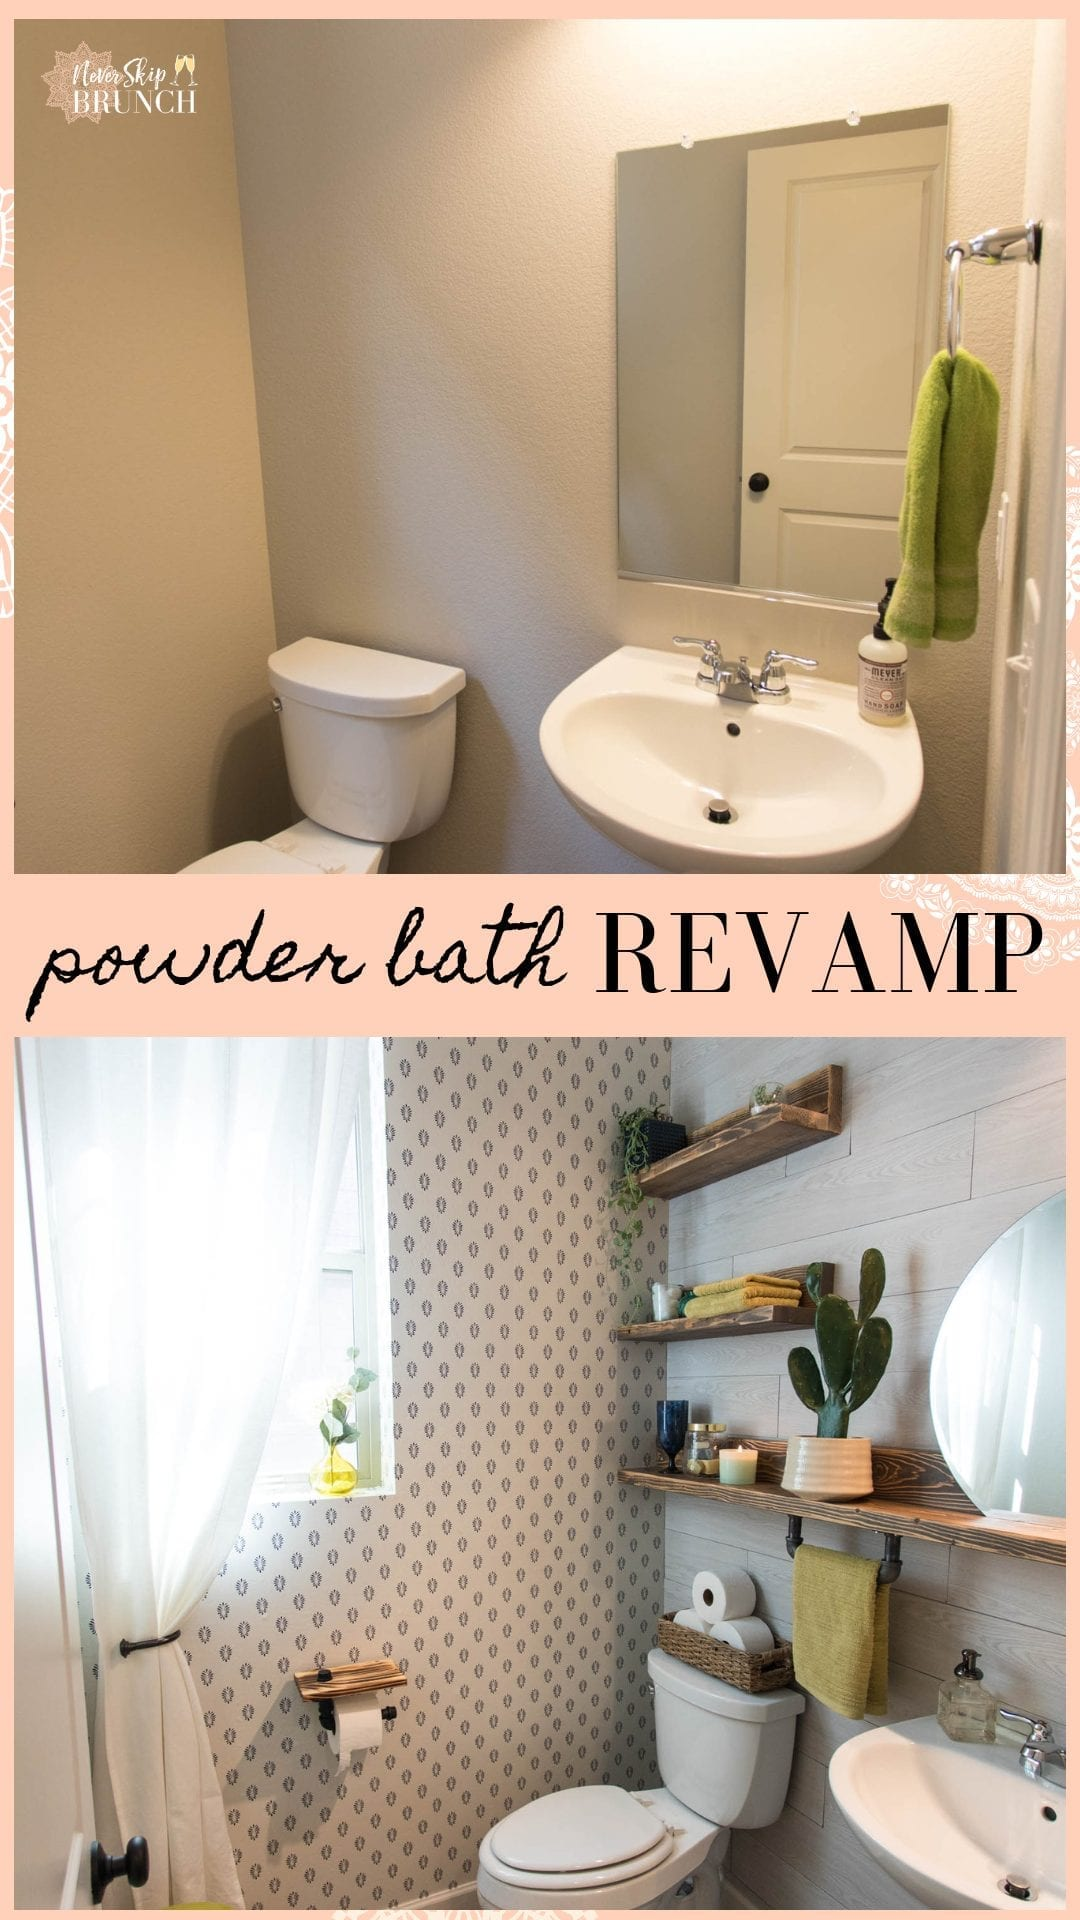 This Powder bath makeover gives you small powder bathroom ideas for transforming your space with elegant industrial powder bath decor | Never Skip Brunch by Cara Newhart #design #decor #interiordesign